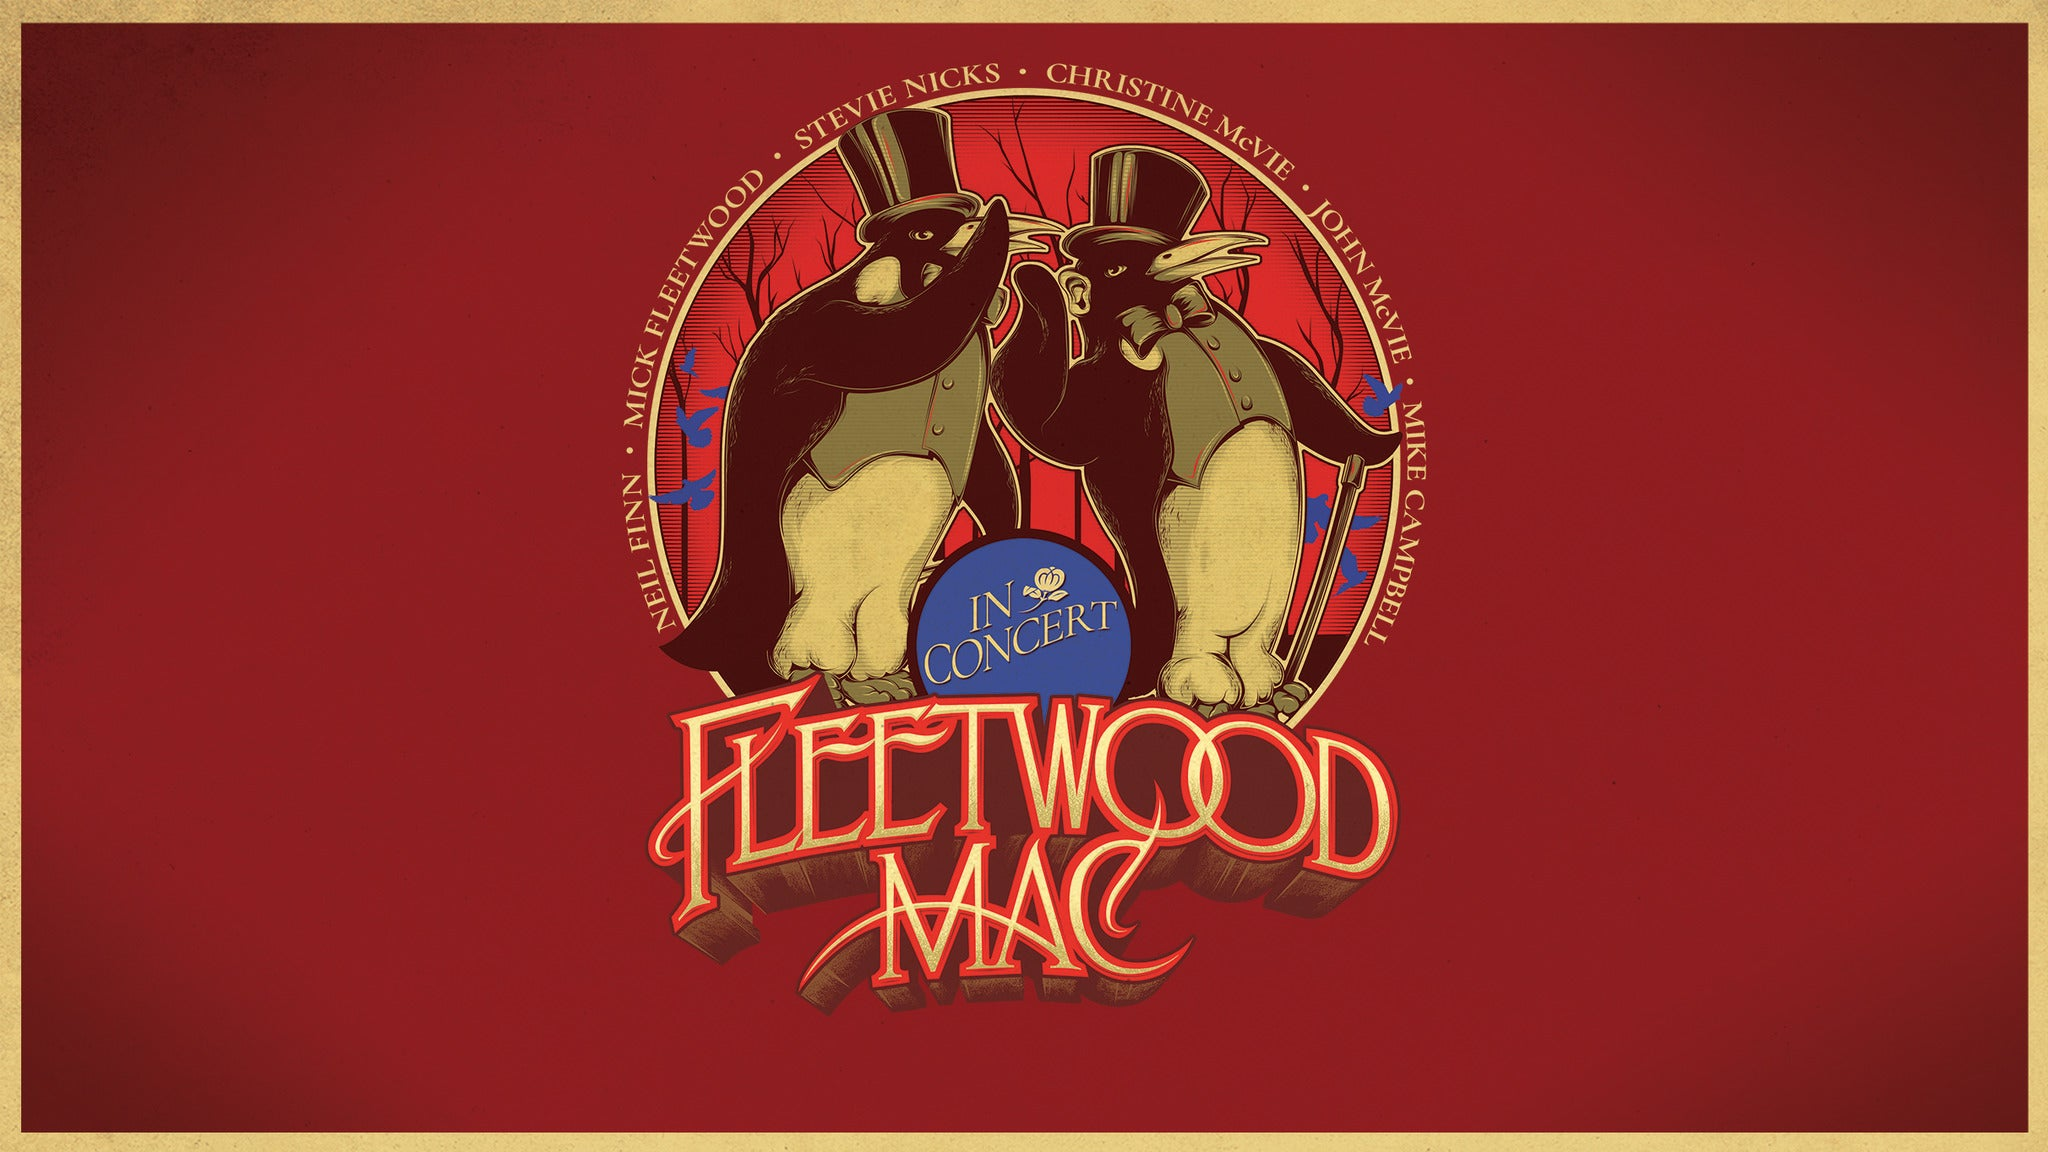 An Evening With Fleetwood Mac at Toyota Center